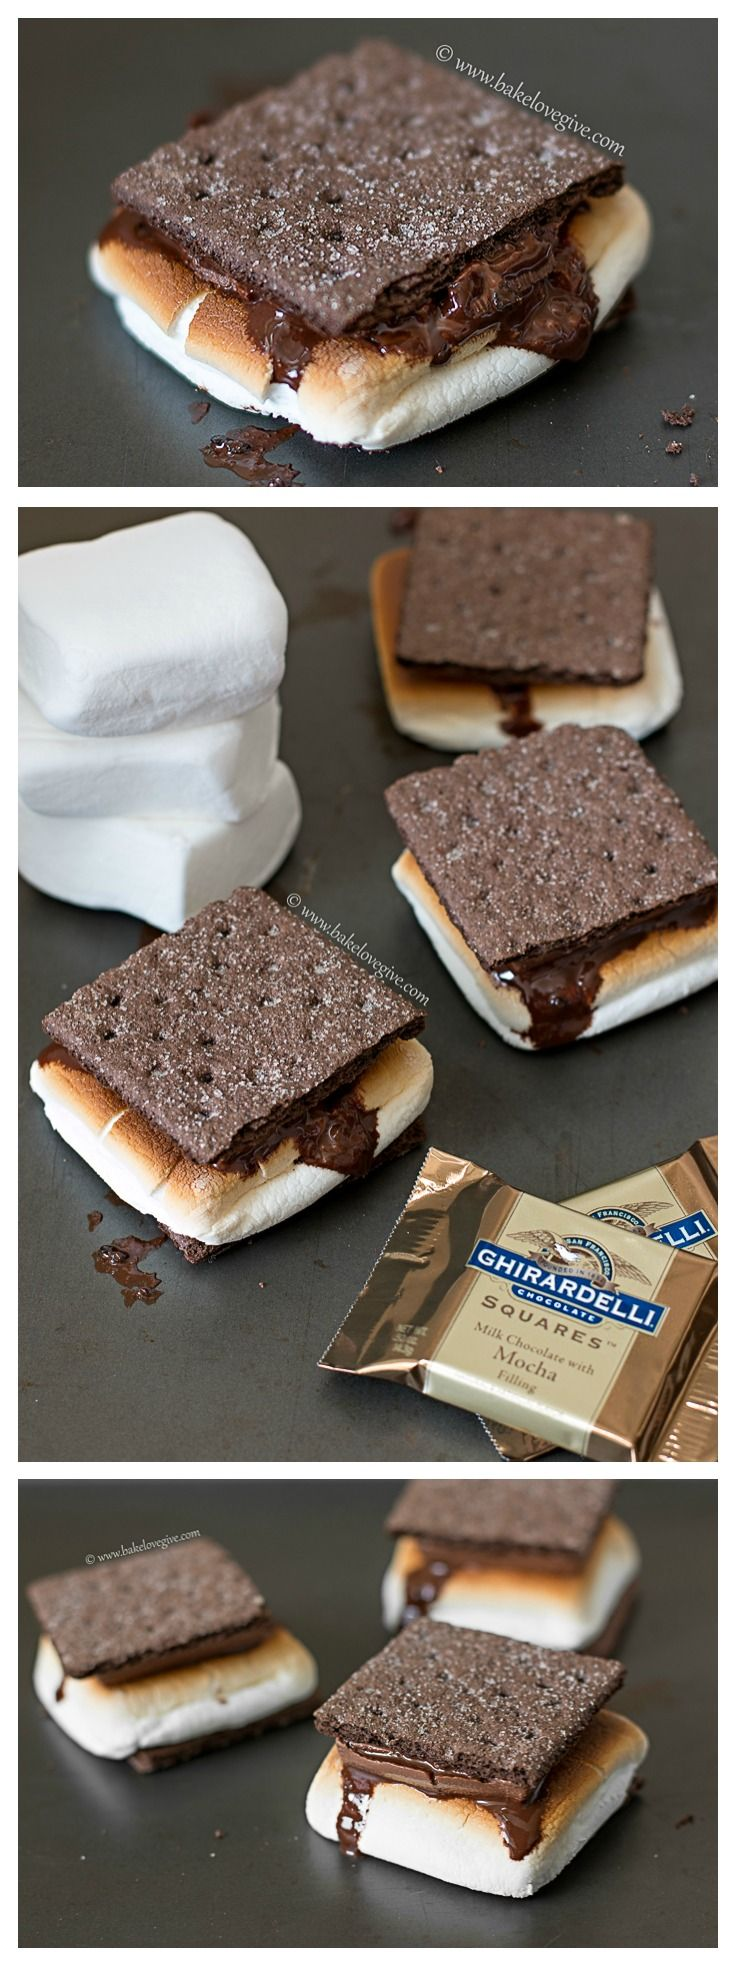 10 Best images about Dessert-Smores on Pinterest | Nutella ...